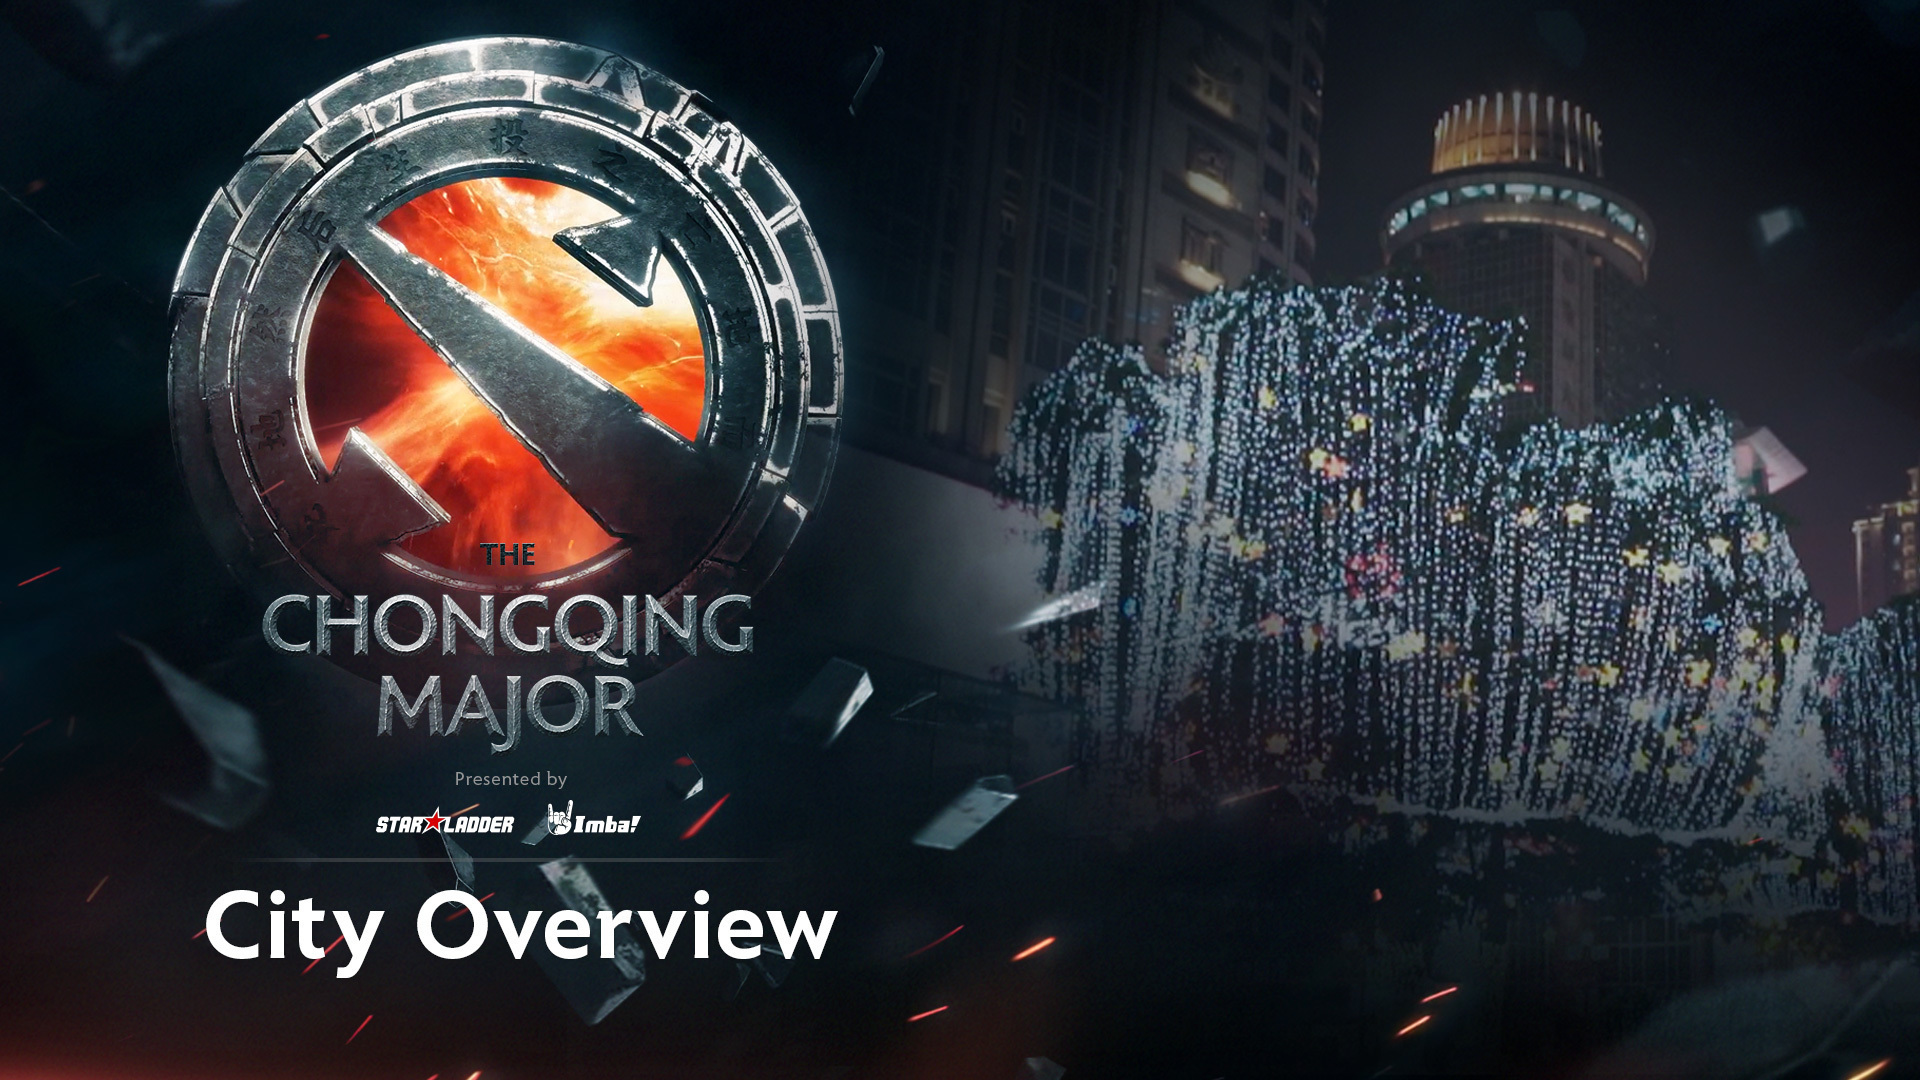 The Chongqing Major: City Overview